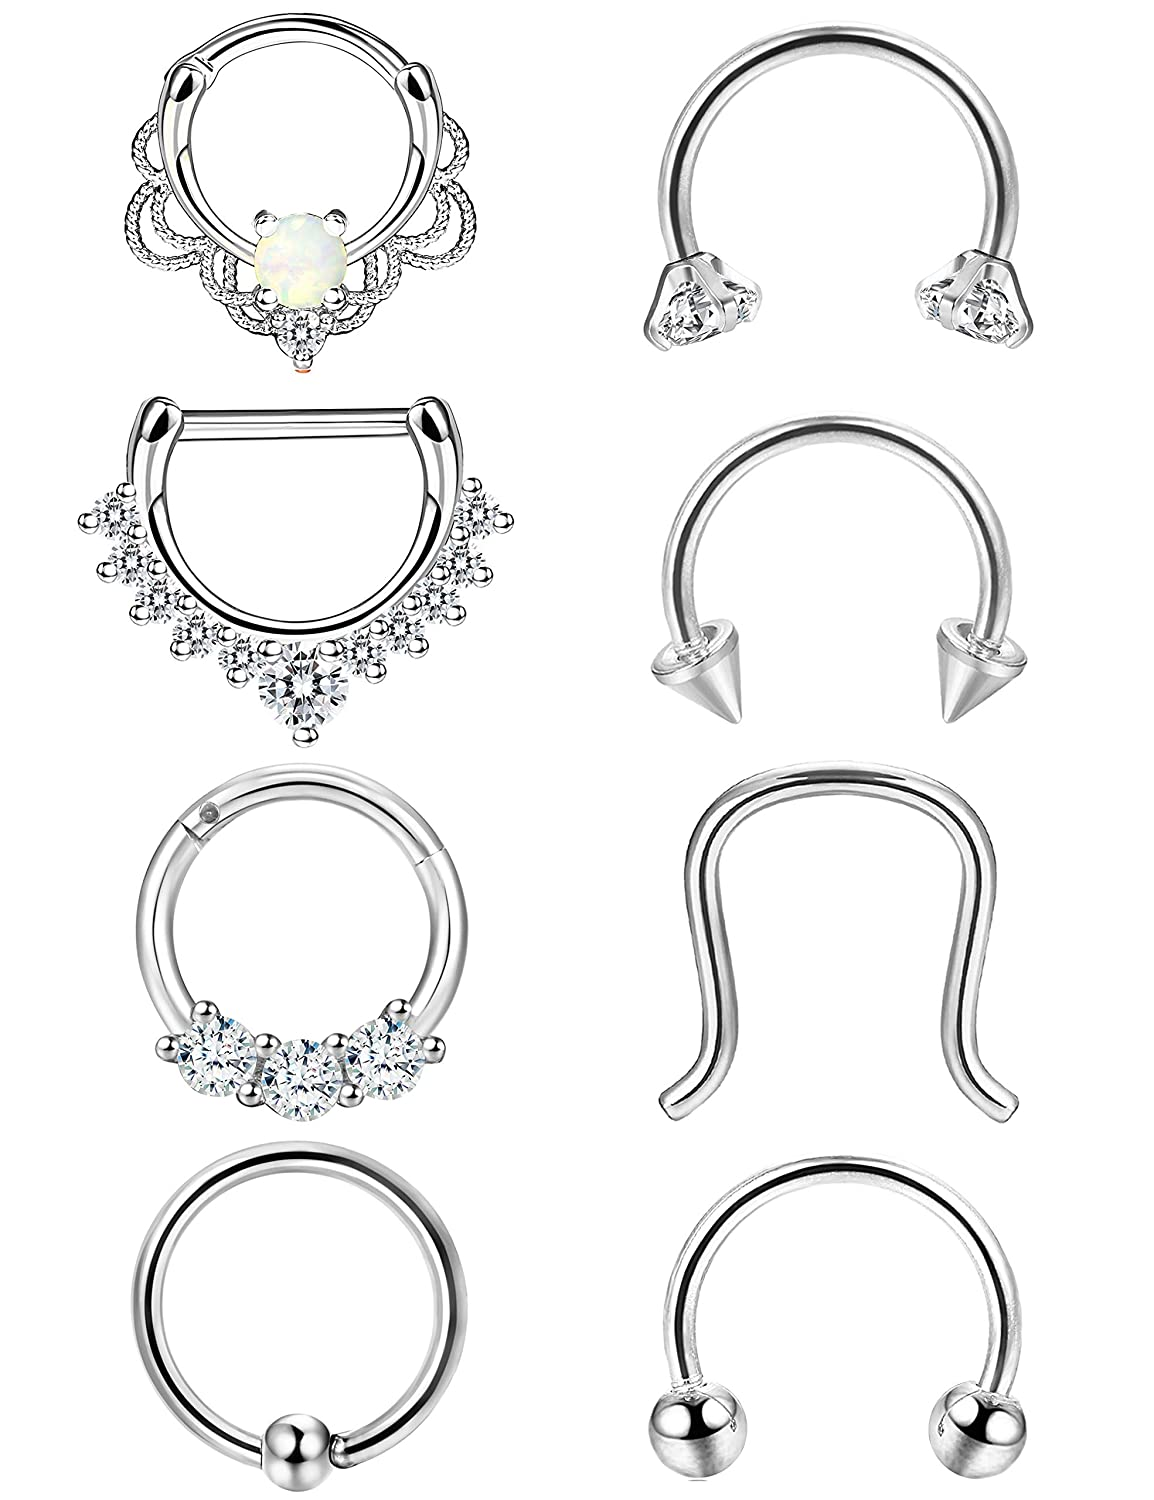 ORAZIO 8PCS 16G 316L Stainless Steel Septum Hoop Nose Ring Horseshoe Rings Daith Piercing Jewelry Diameter 8MM 10MM CC57-8S-8MM